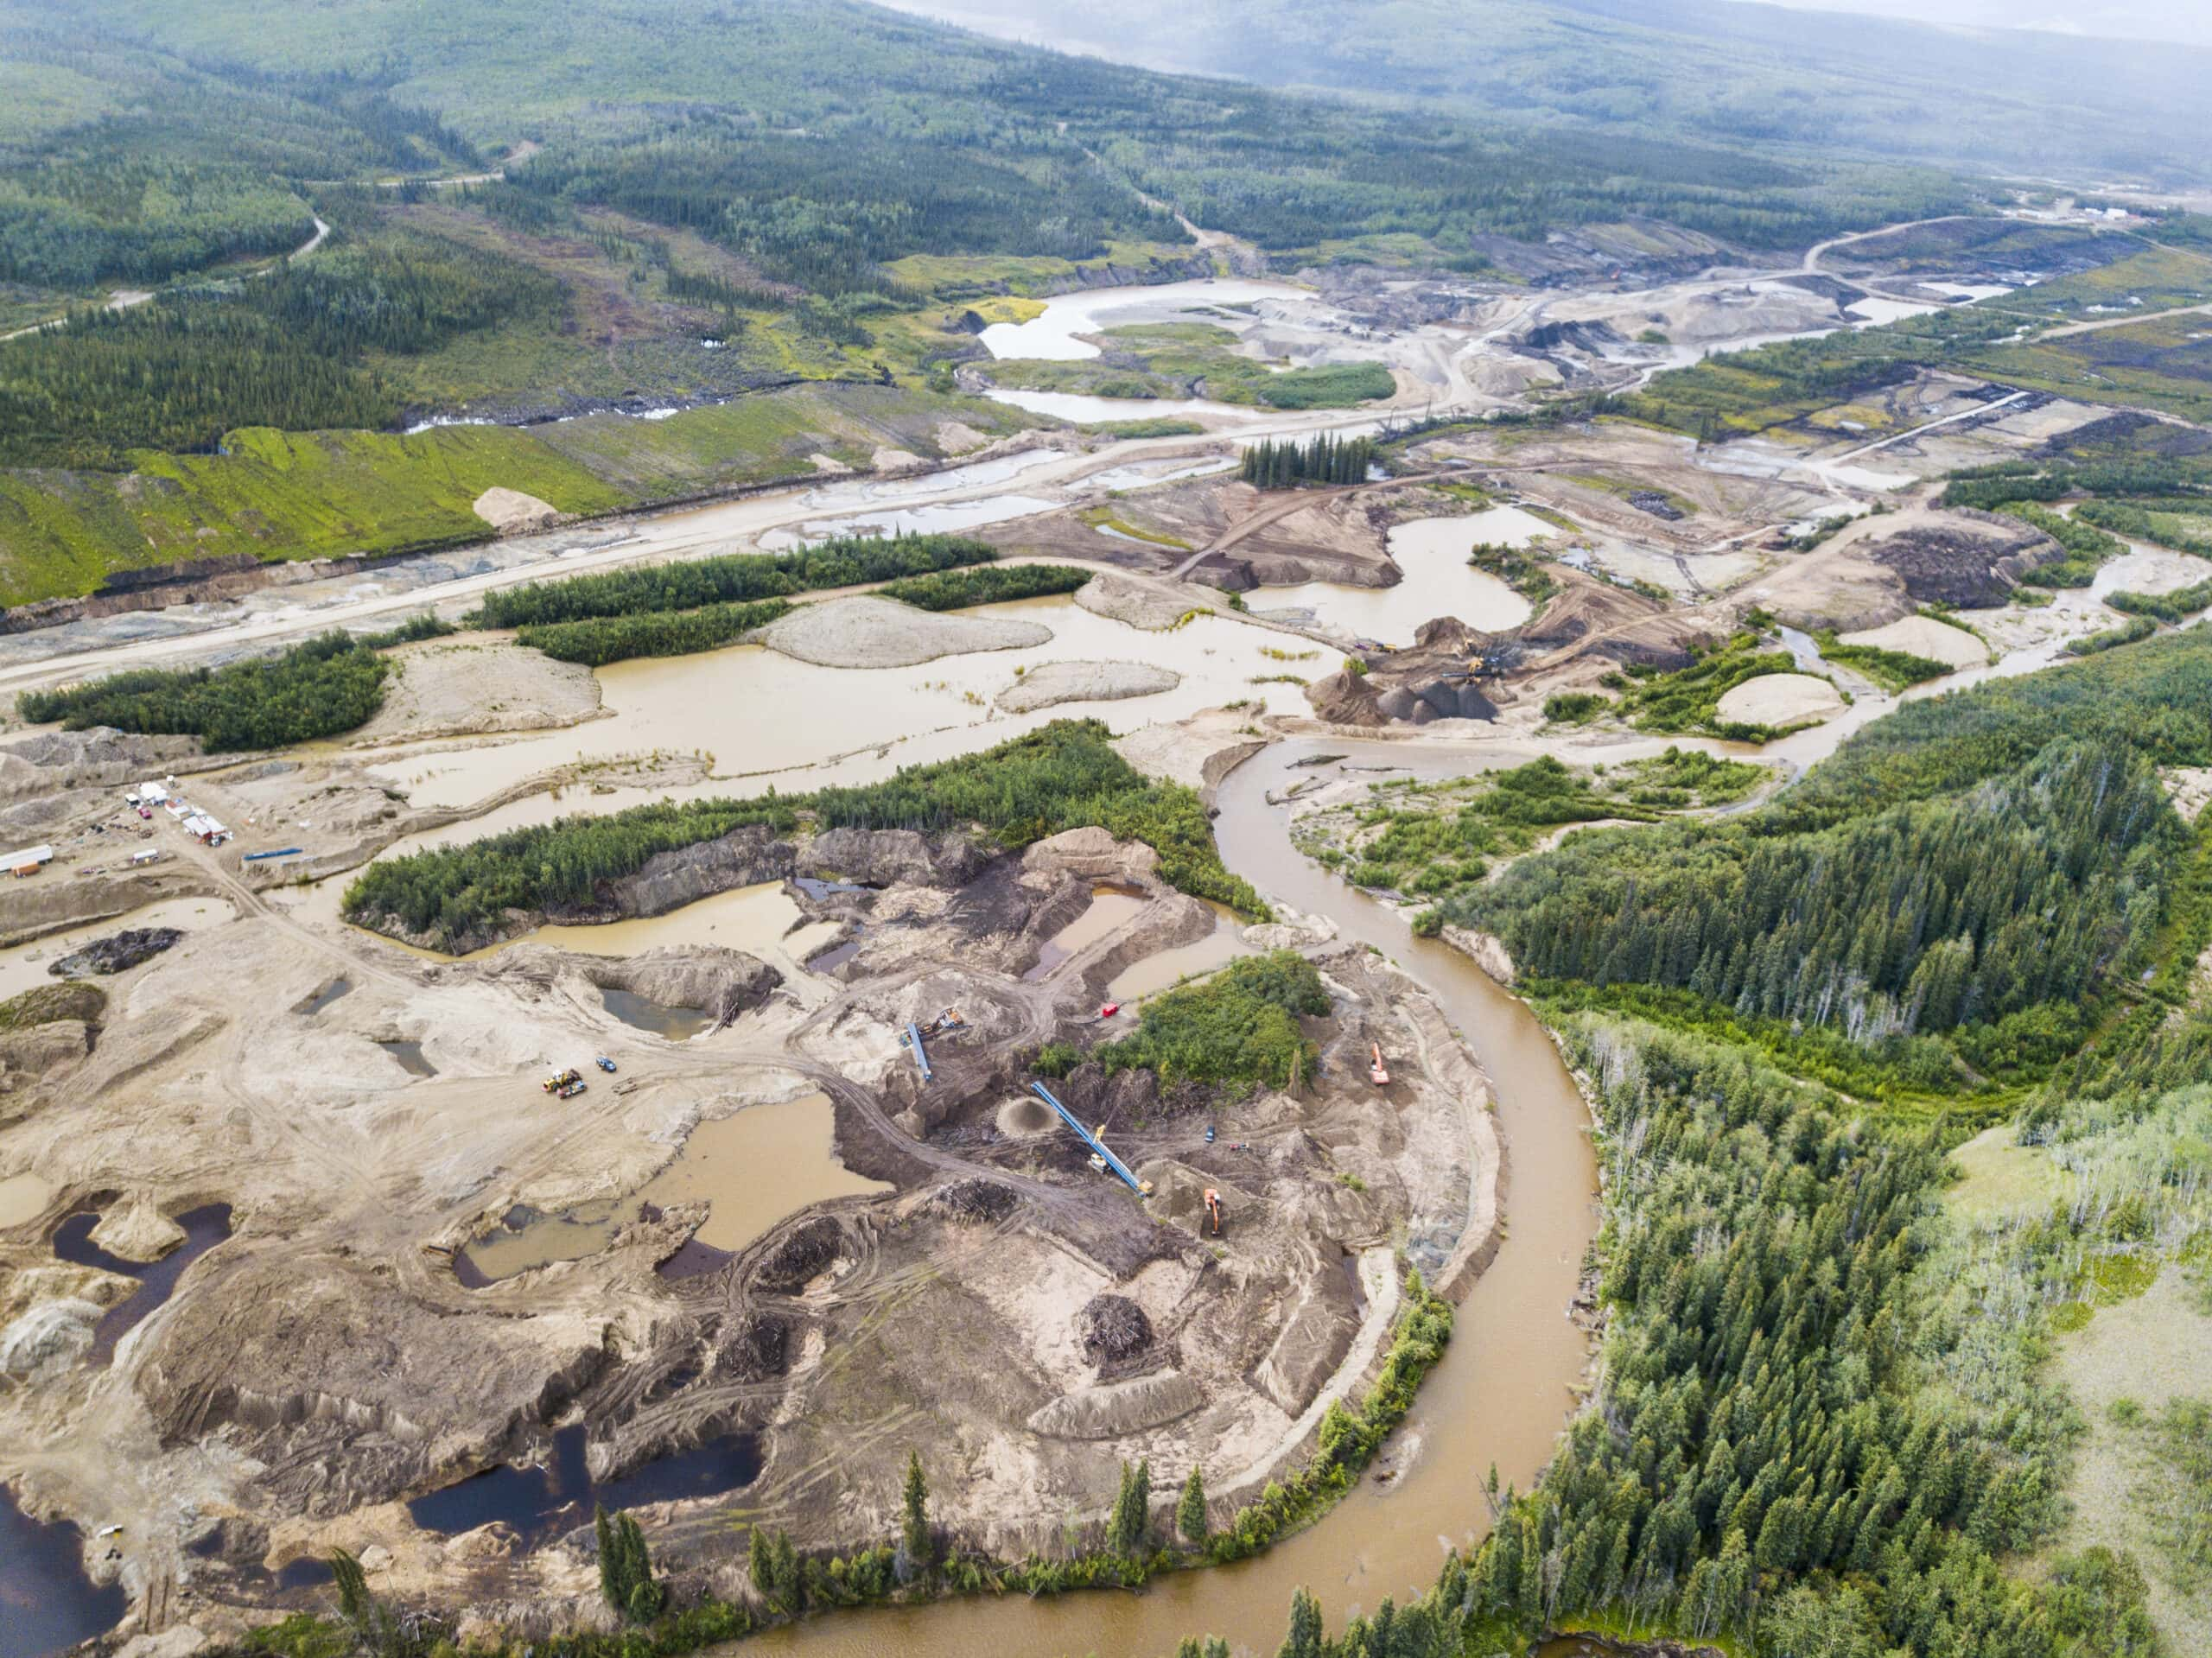 Placer mining Yukon seen from the sky